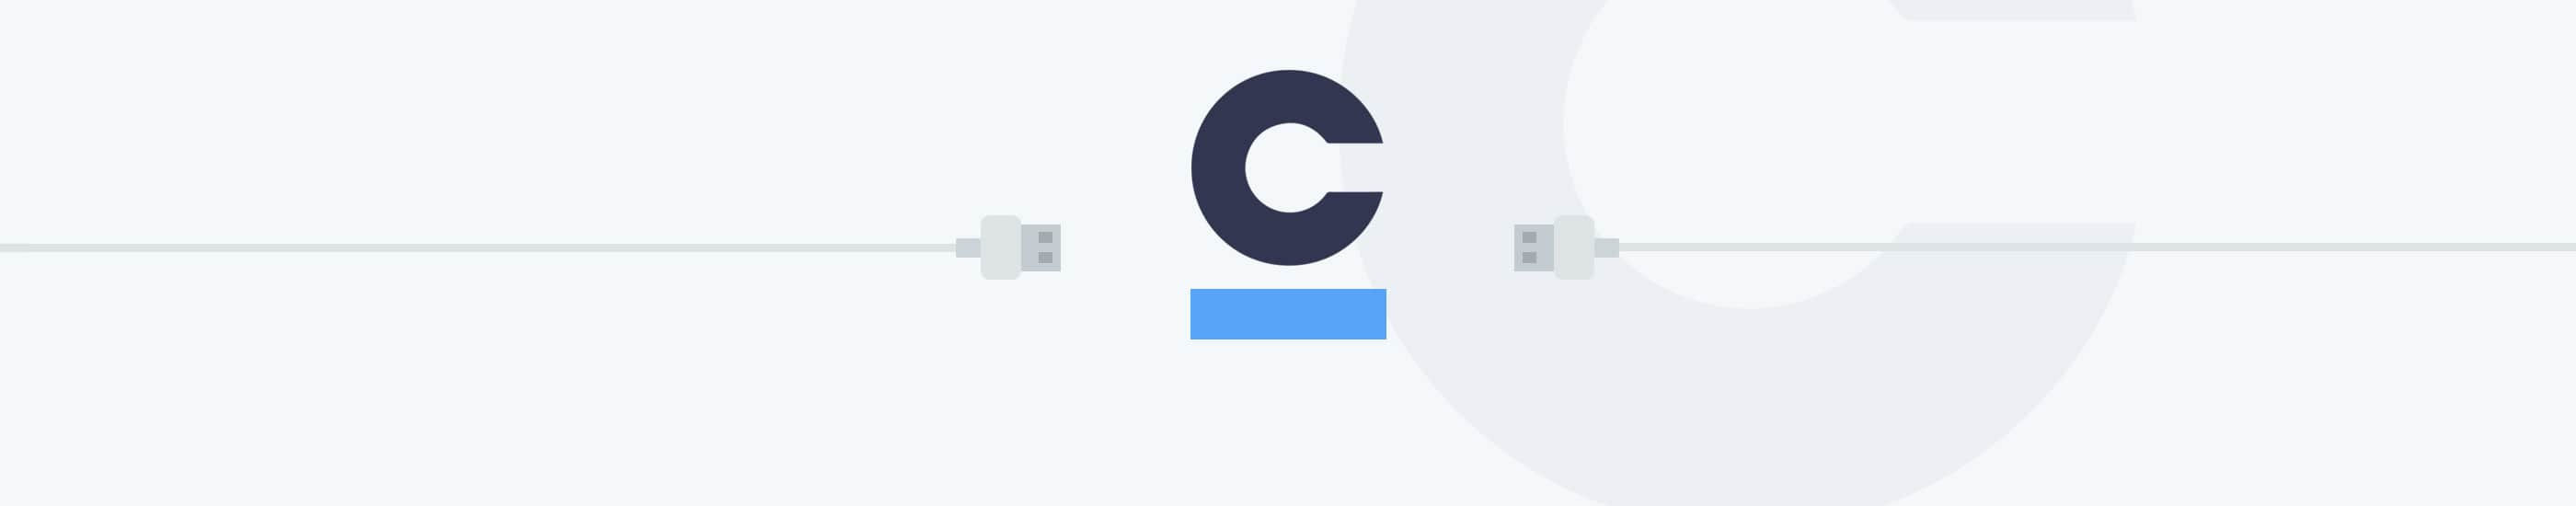 Header for Introducing chat.io integration